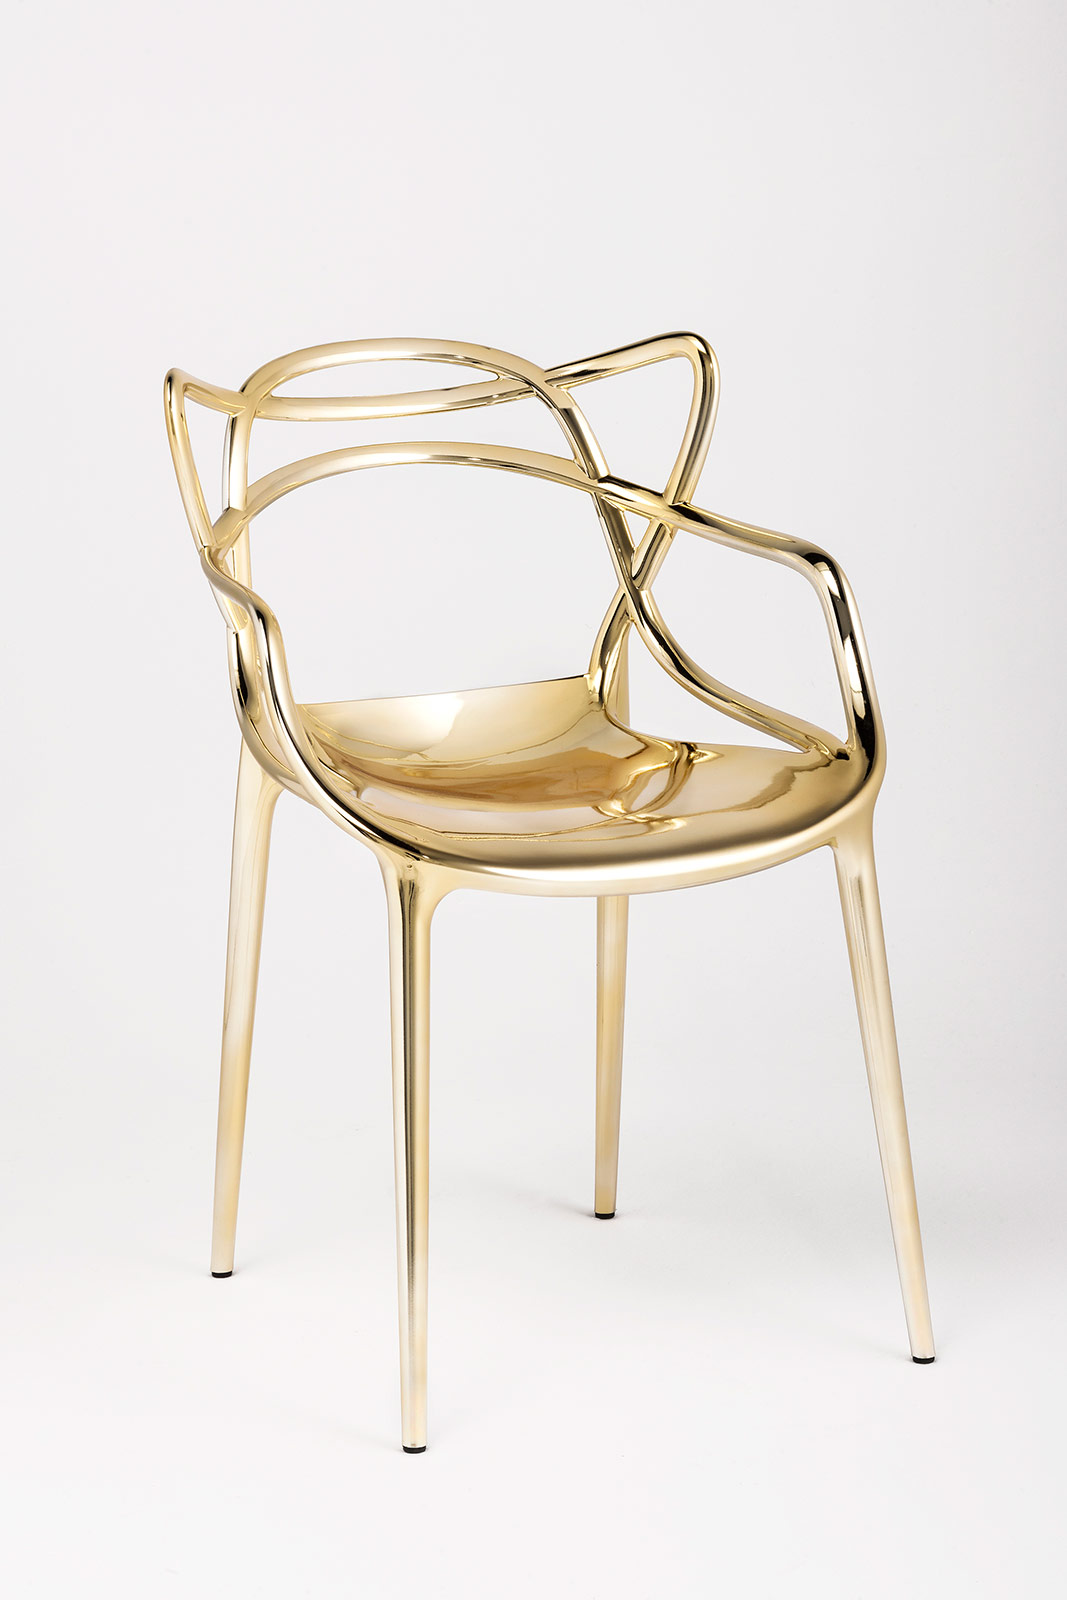 modern gold chairs 8 Modern Gold Chairs for your Living Room 10 Modern Gold Chairs for your Living Room